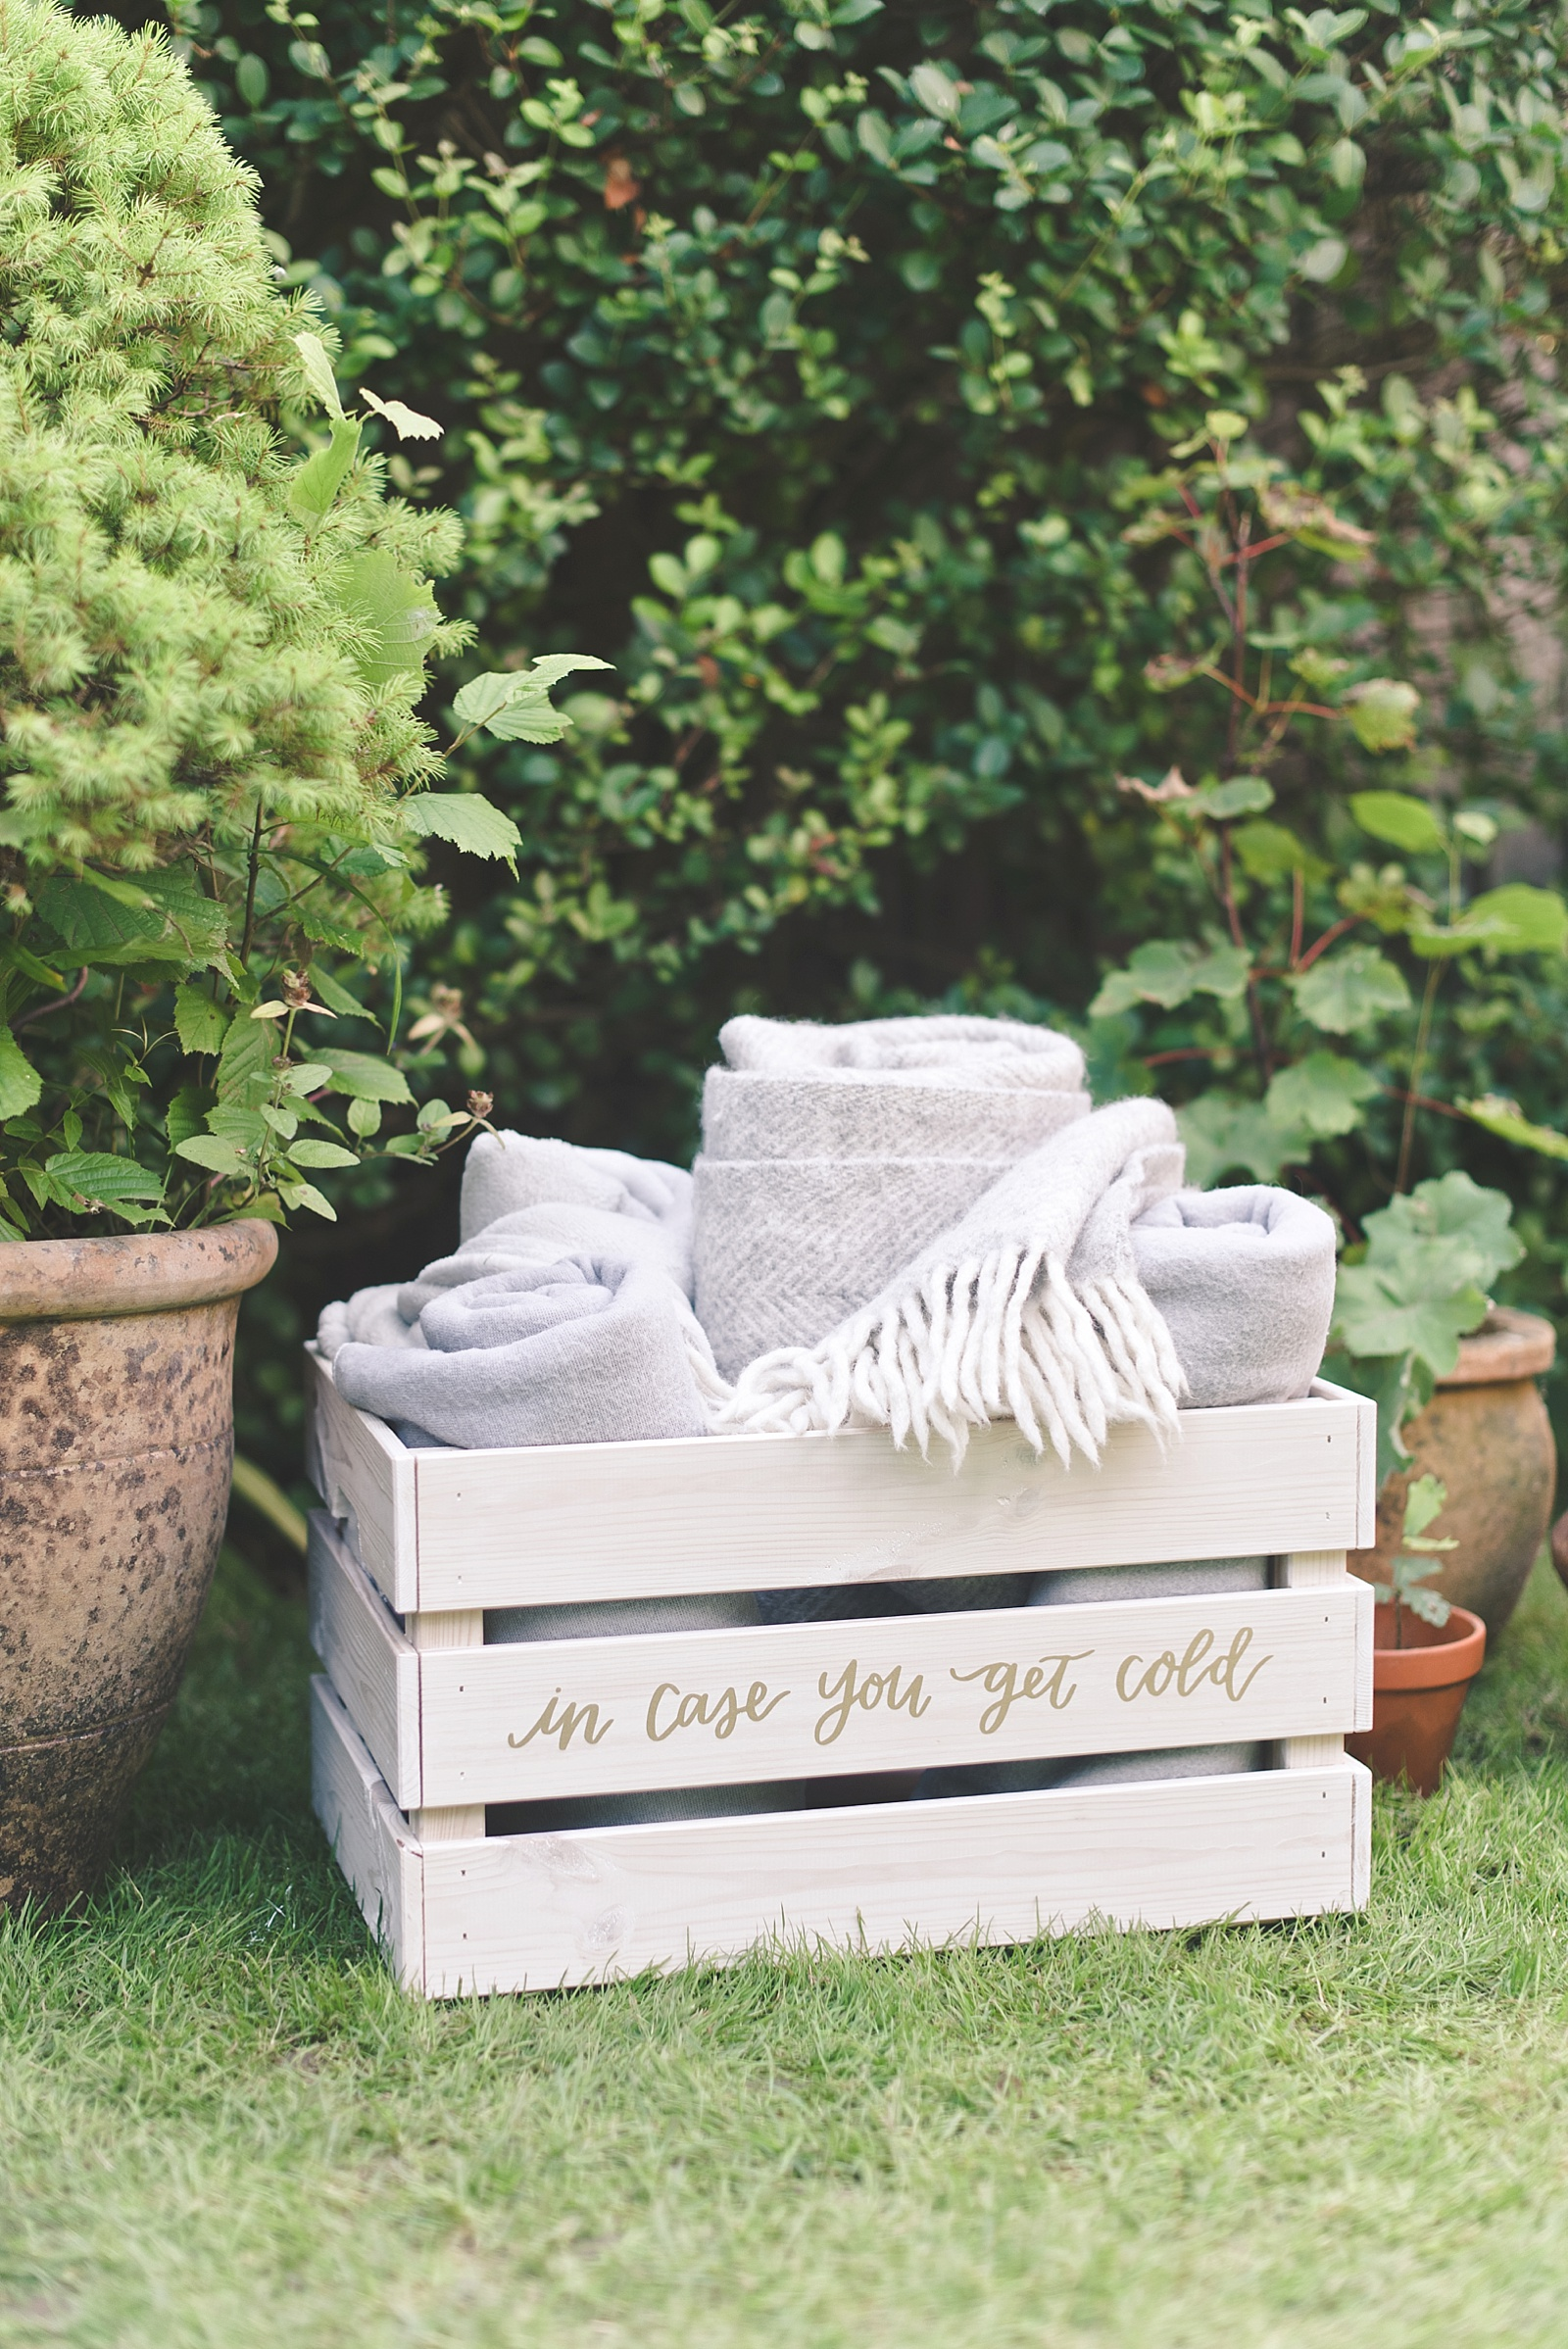 DIY wedding box crate for blankets